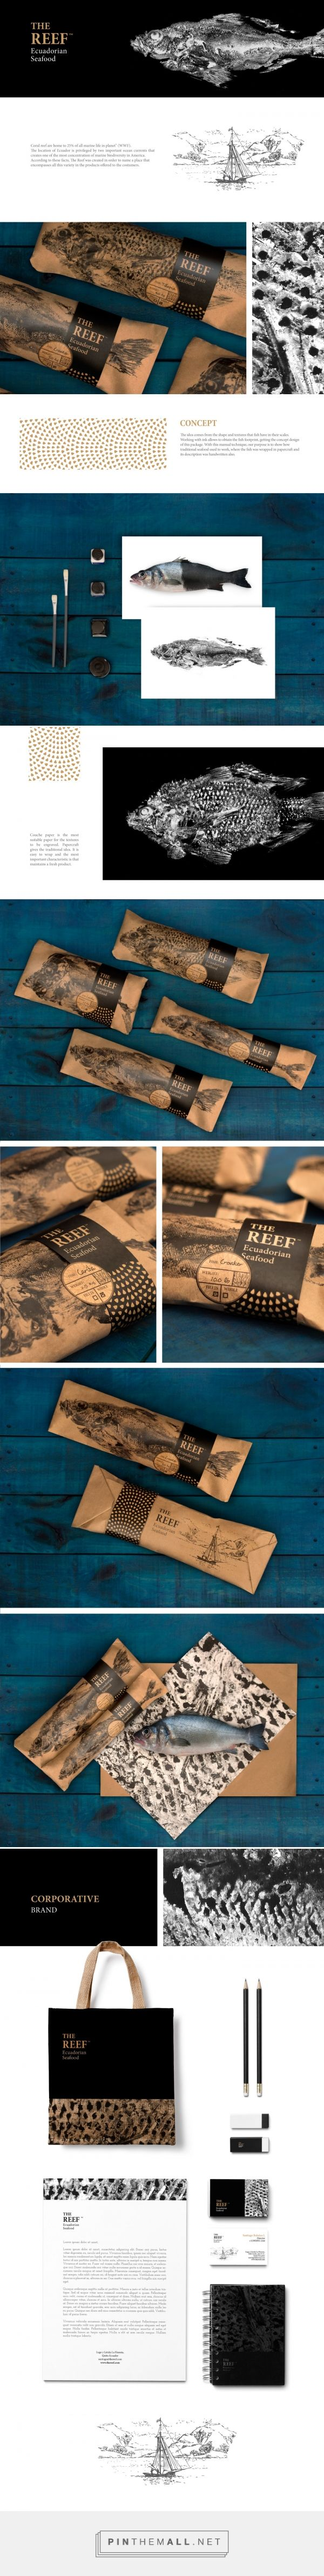 THE REEF Ecuadaorian seafood Branding and Packaging by Kubu Design | Fivestar Branding Agency – Design and Branding Agency & Curated Inspiration Gallery